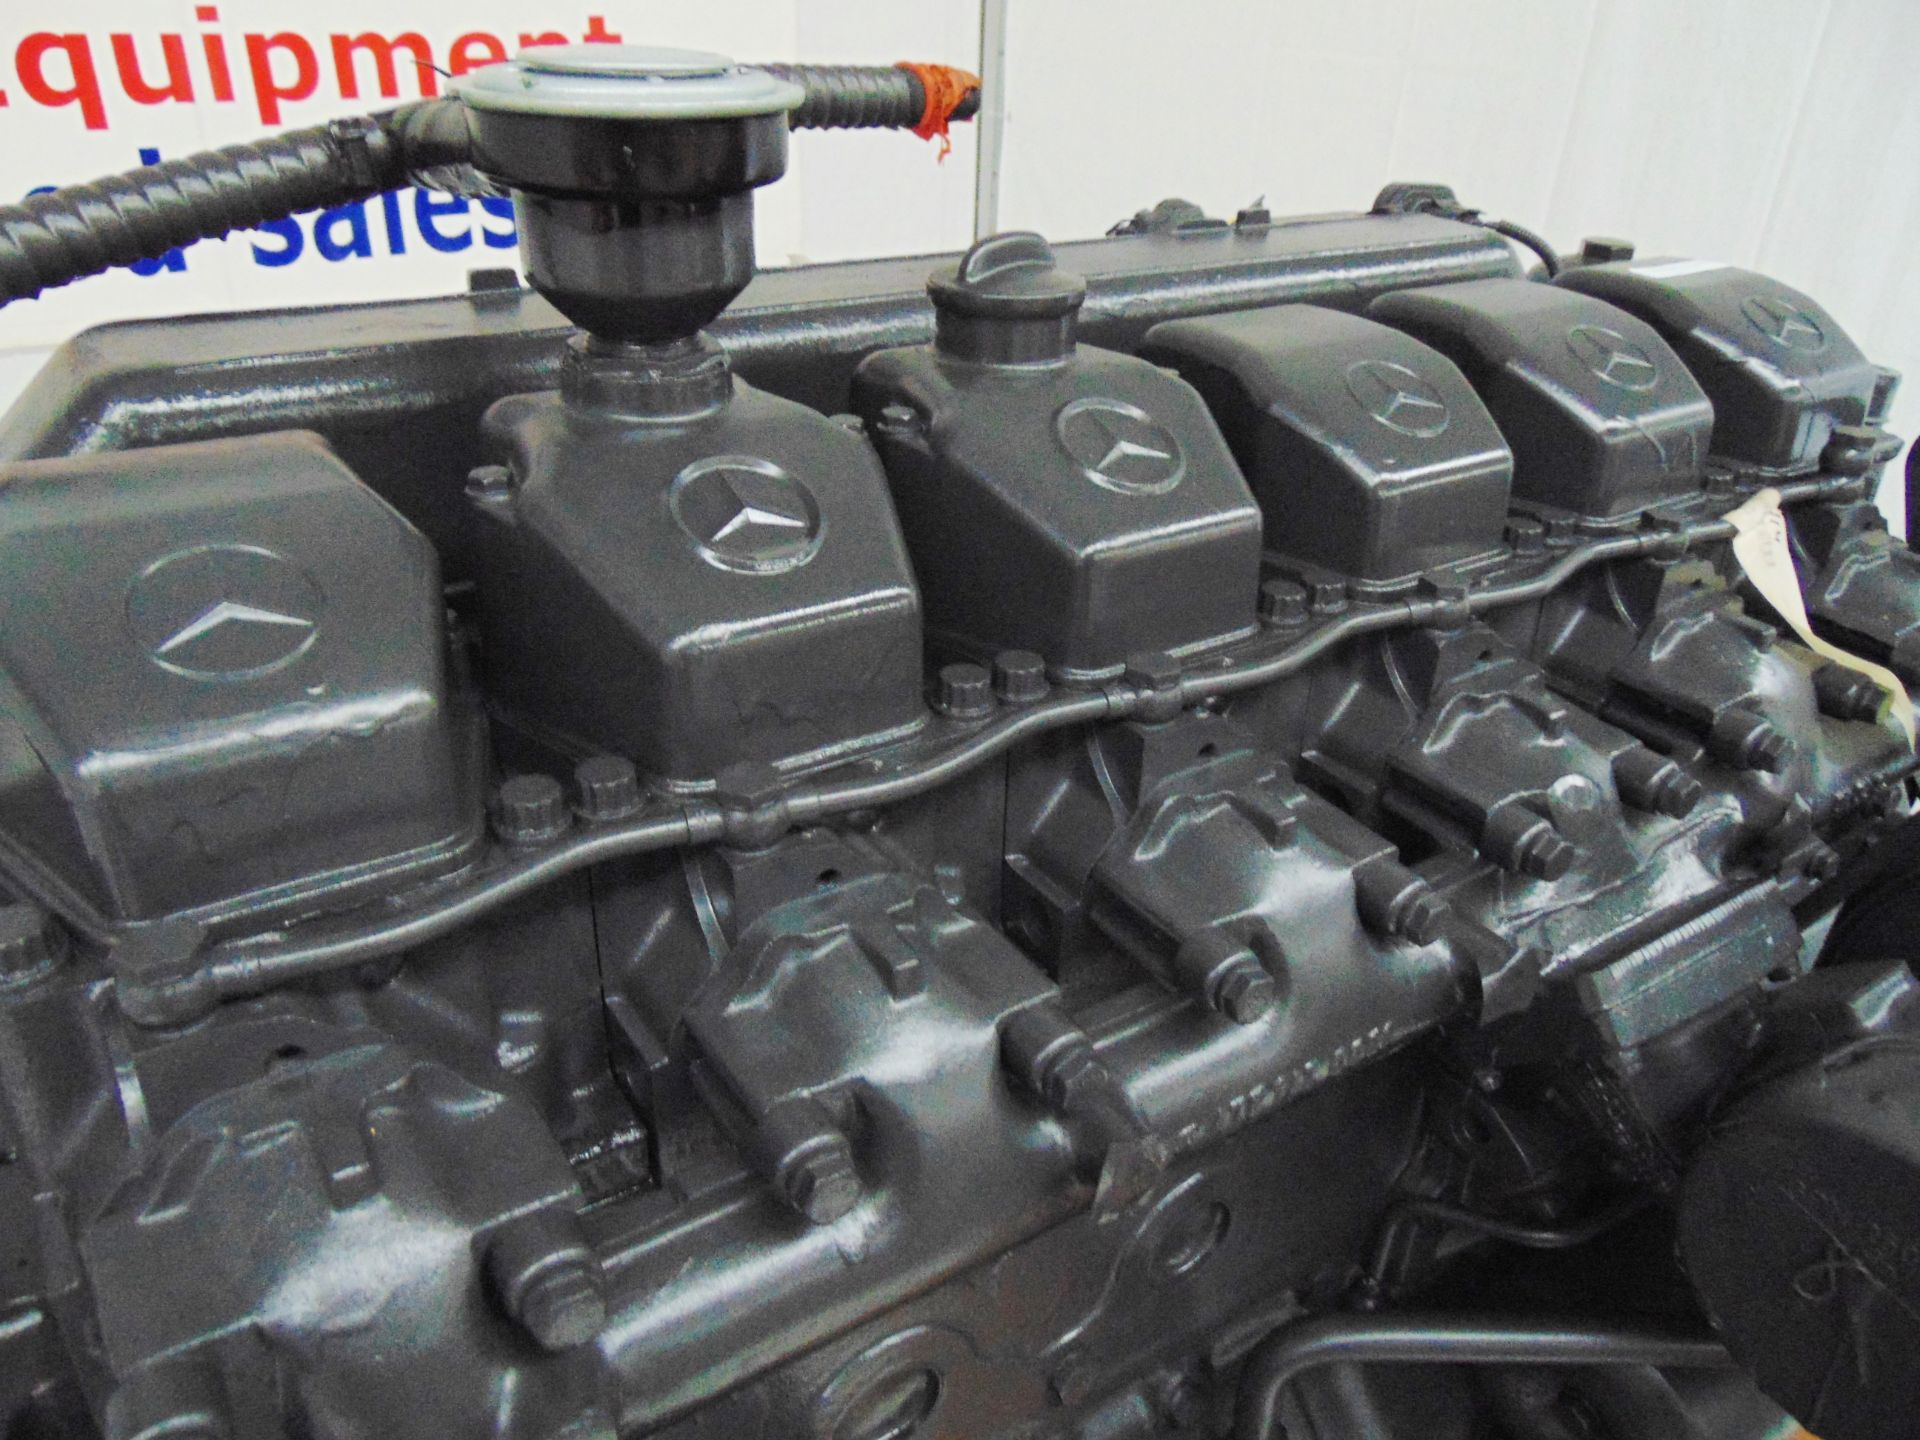 Lot 14 - Factory Reconditioned Mercedes-Benz OM457LA Turbo Diesel Engine